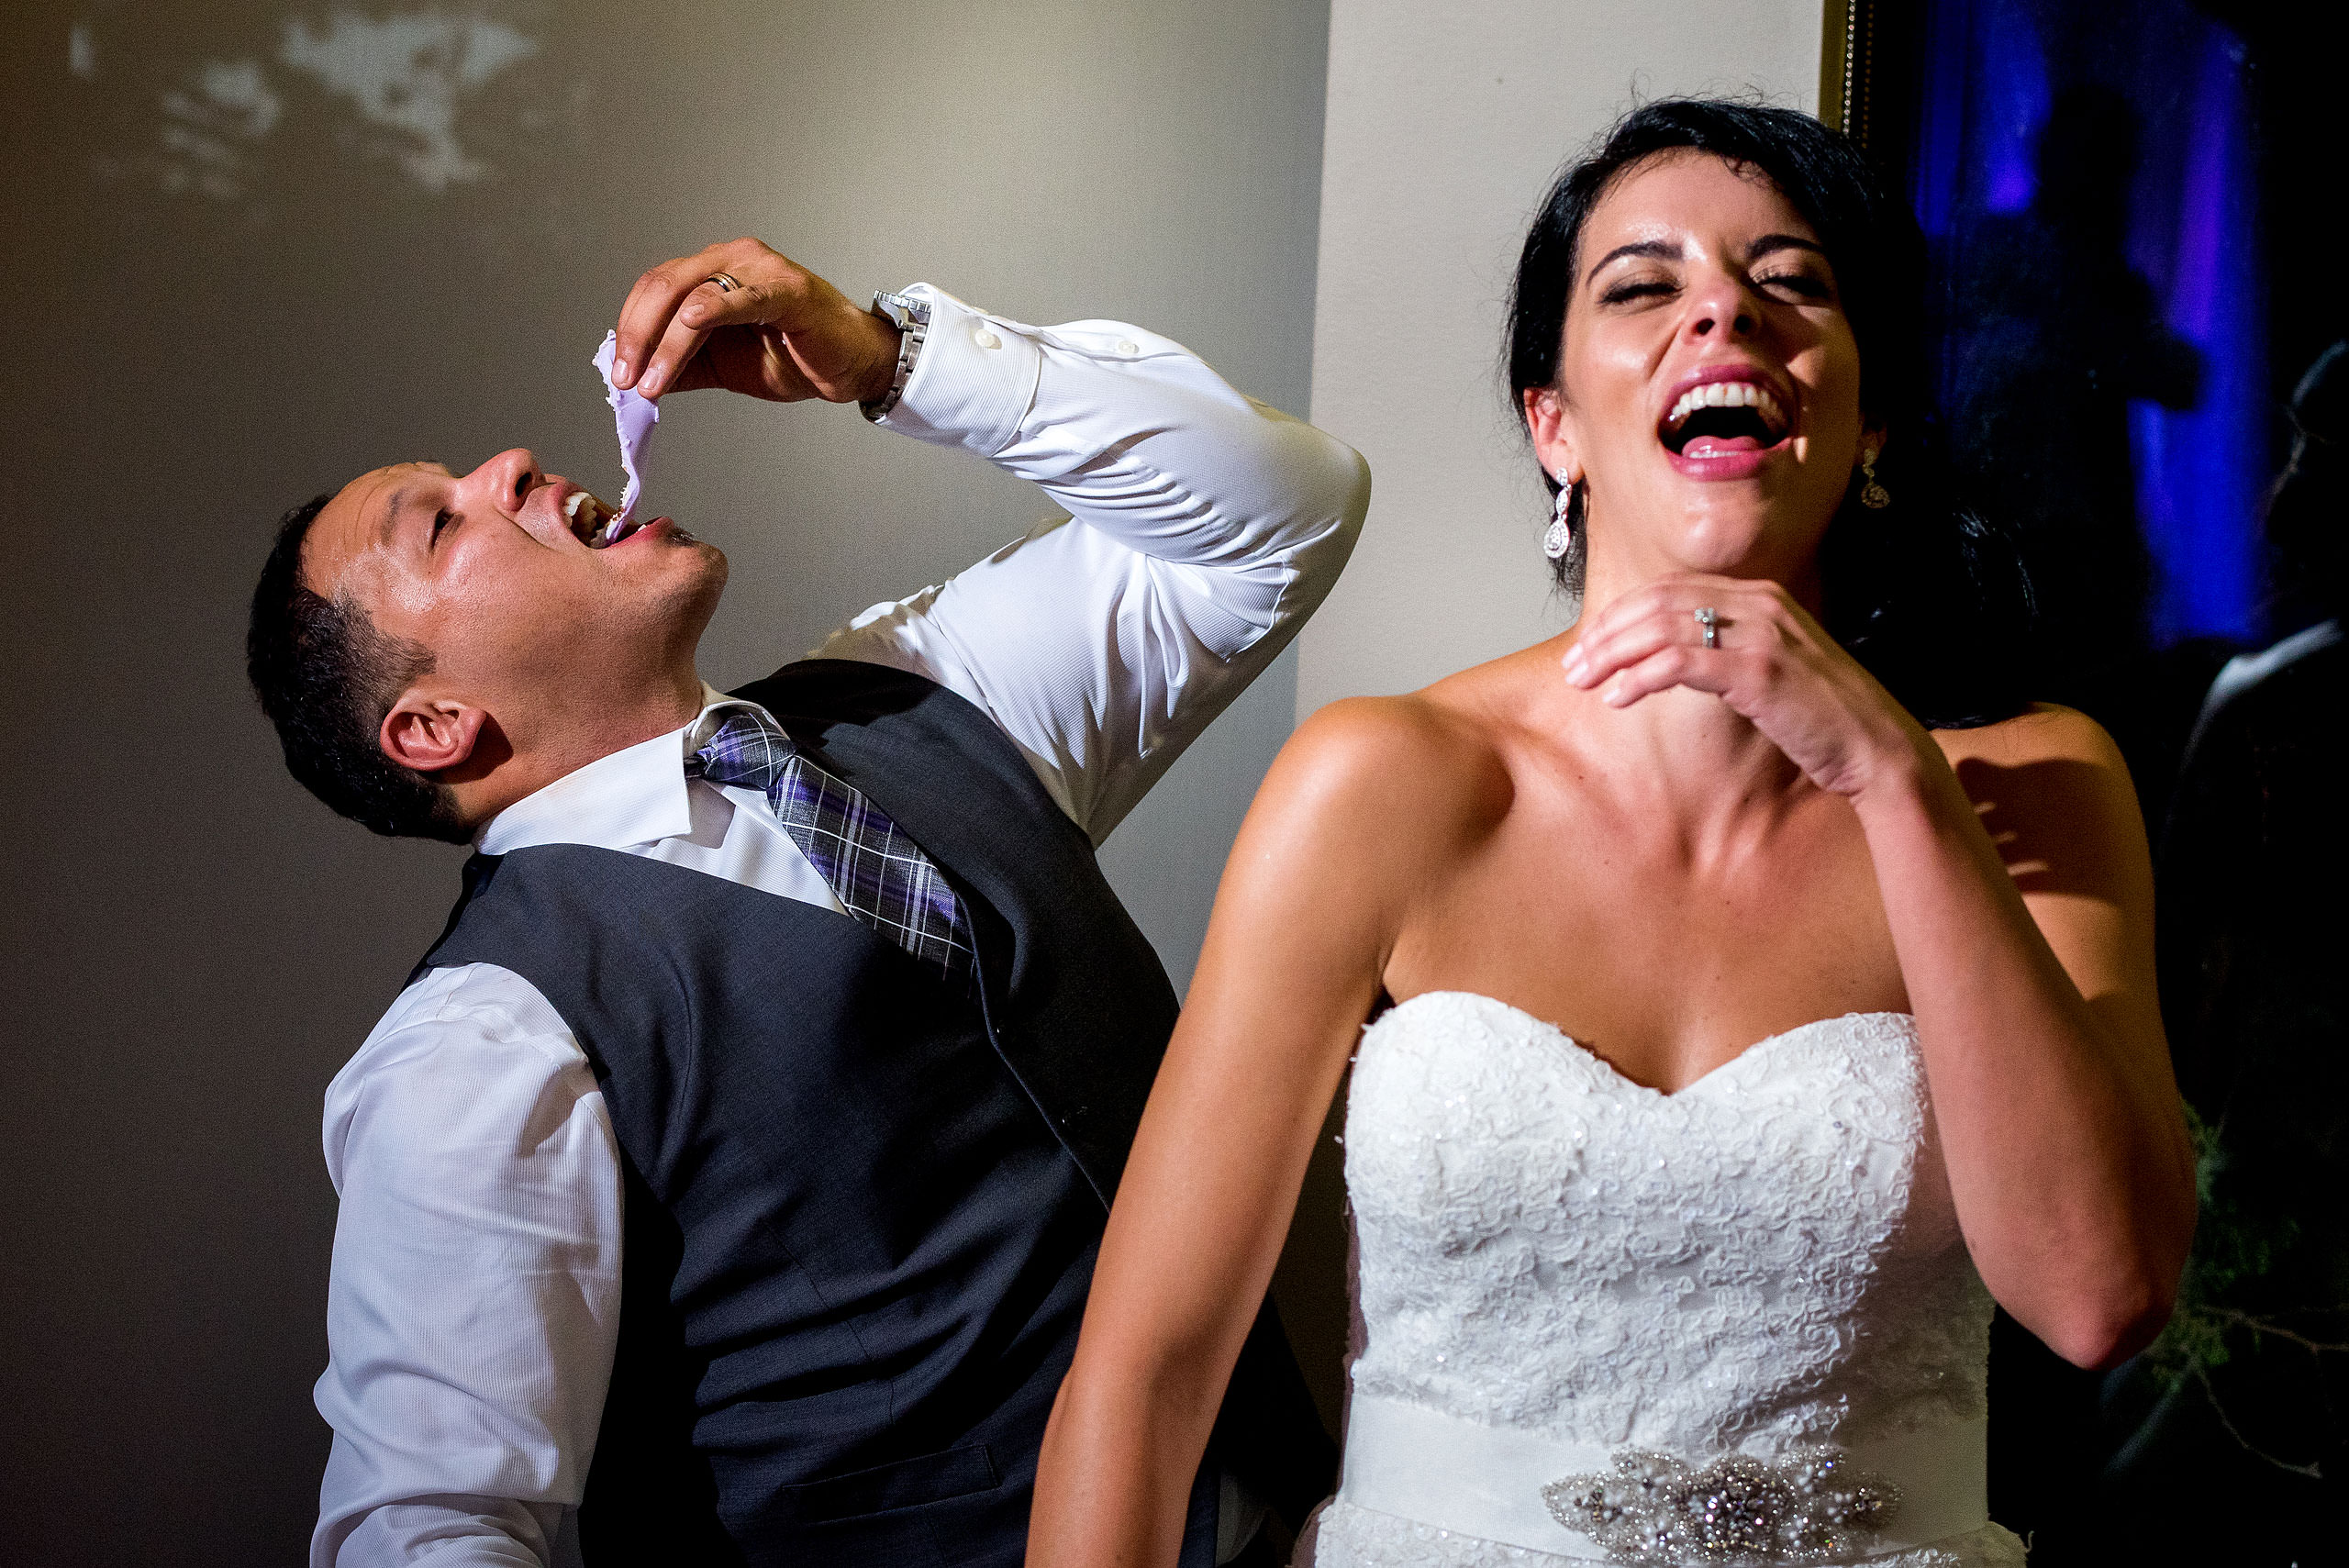 a groom eating a wedding cake with his bride laughing by Edmonton wedding photographer sean leblanc